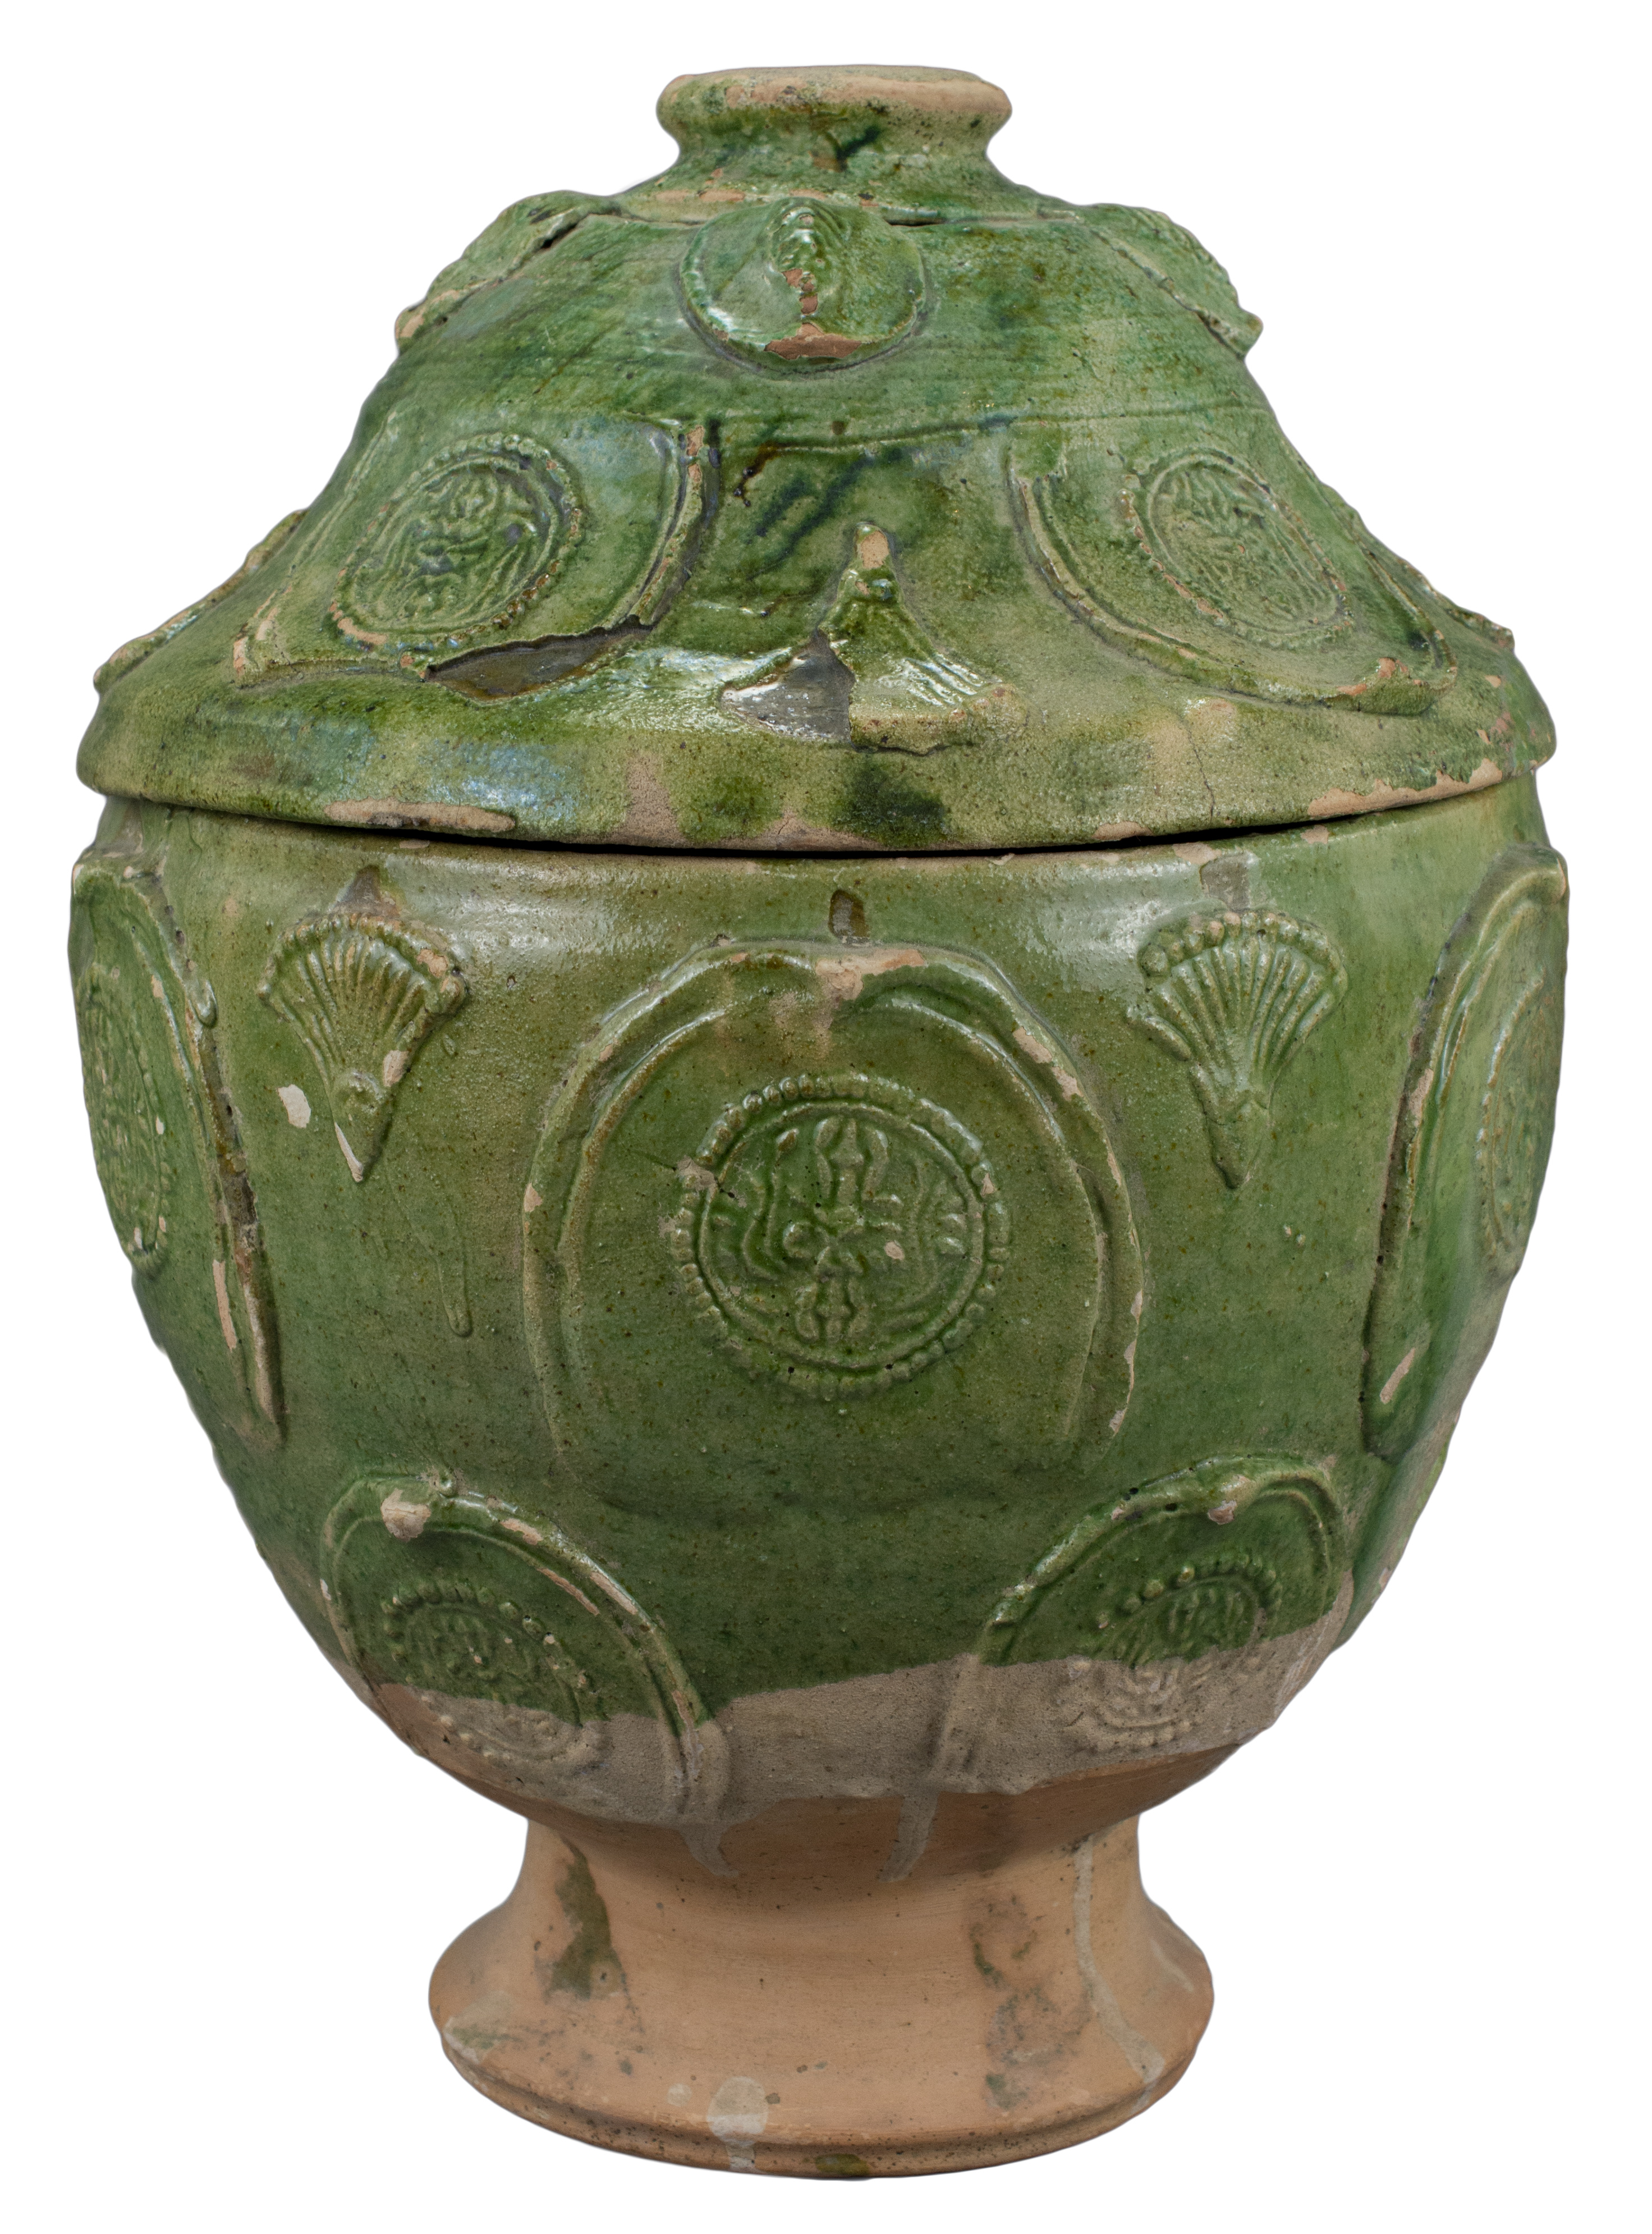 Lot 38 - A Large Chinese Song / Yuan Dynasty Glazed Buddhist Jar with Sanskrit Inscription